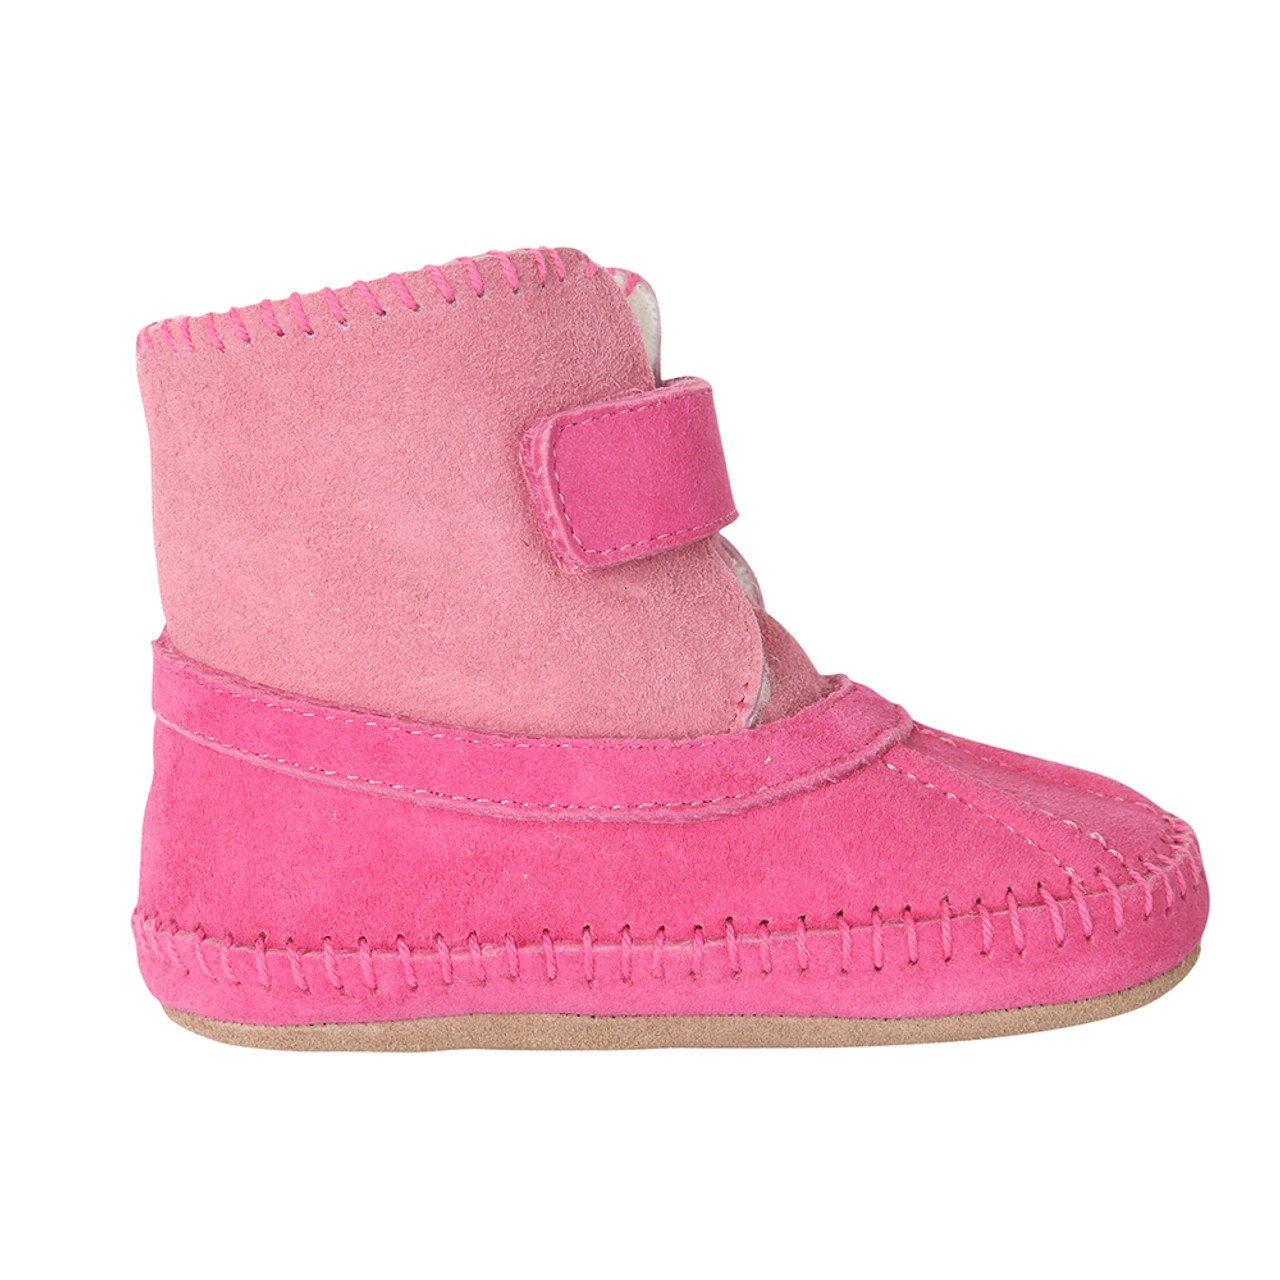 Galway Cozy Boots Pink | Soft Soles